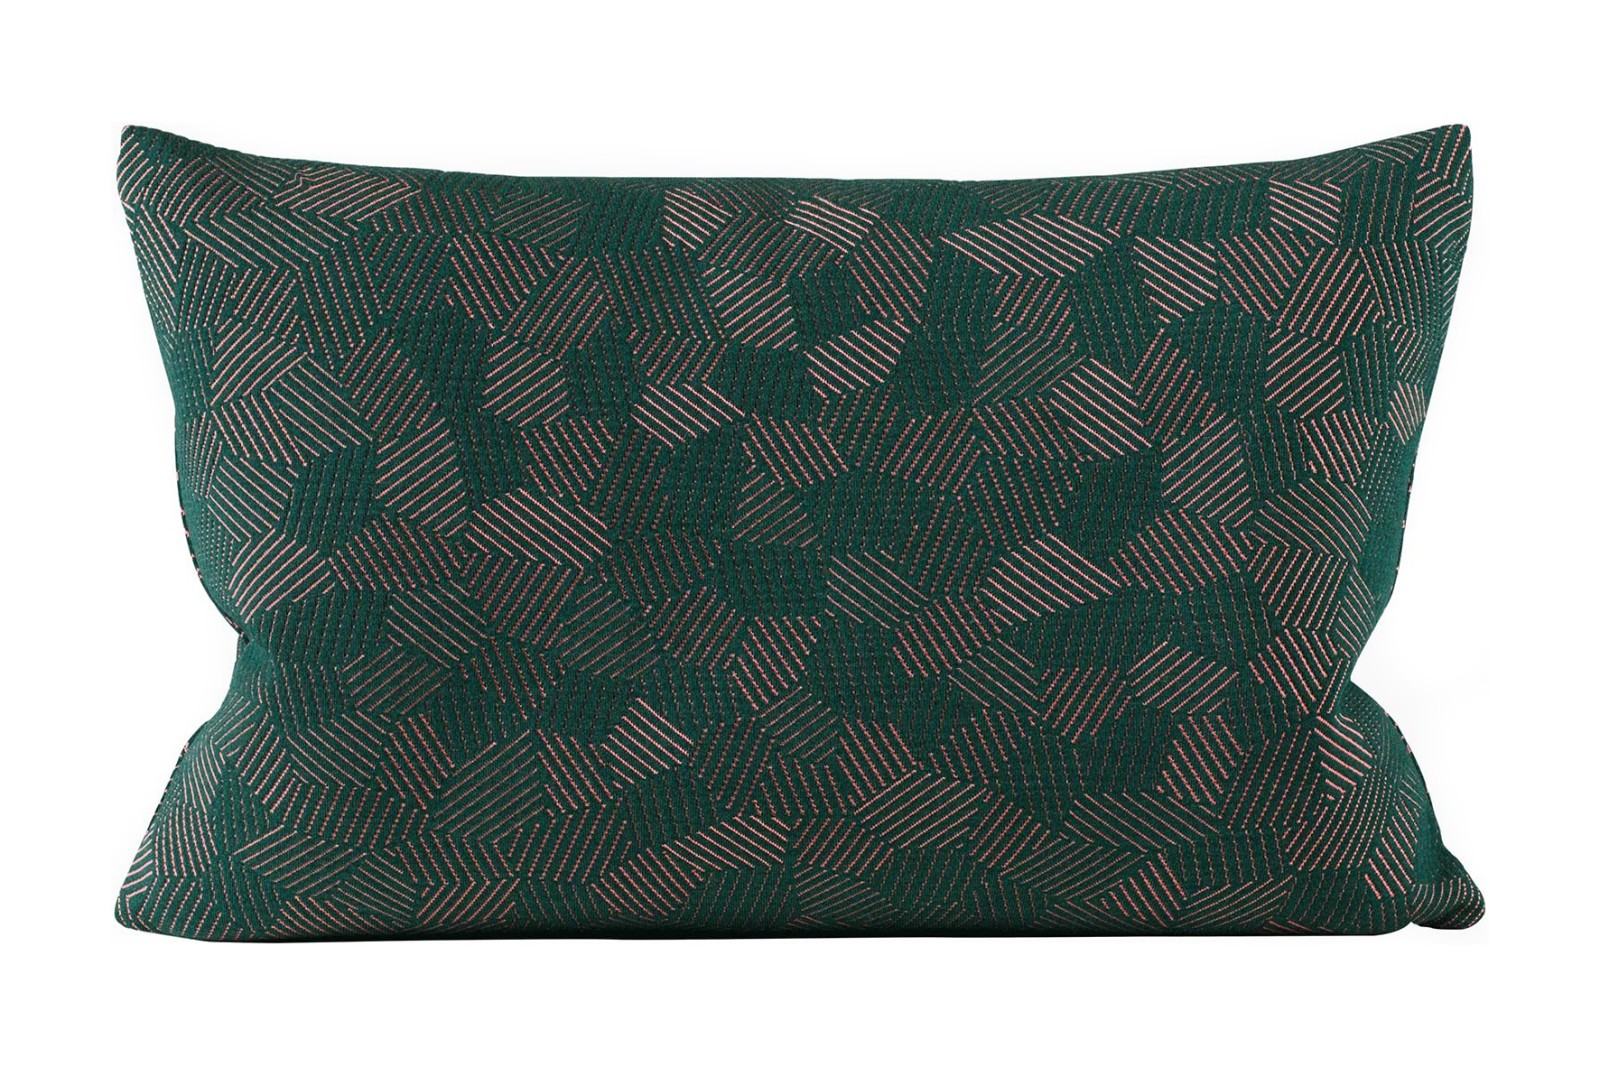 Storm Cushion - Rectangular Tropical